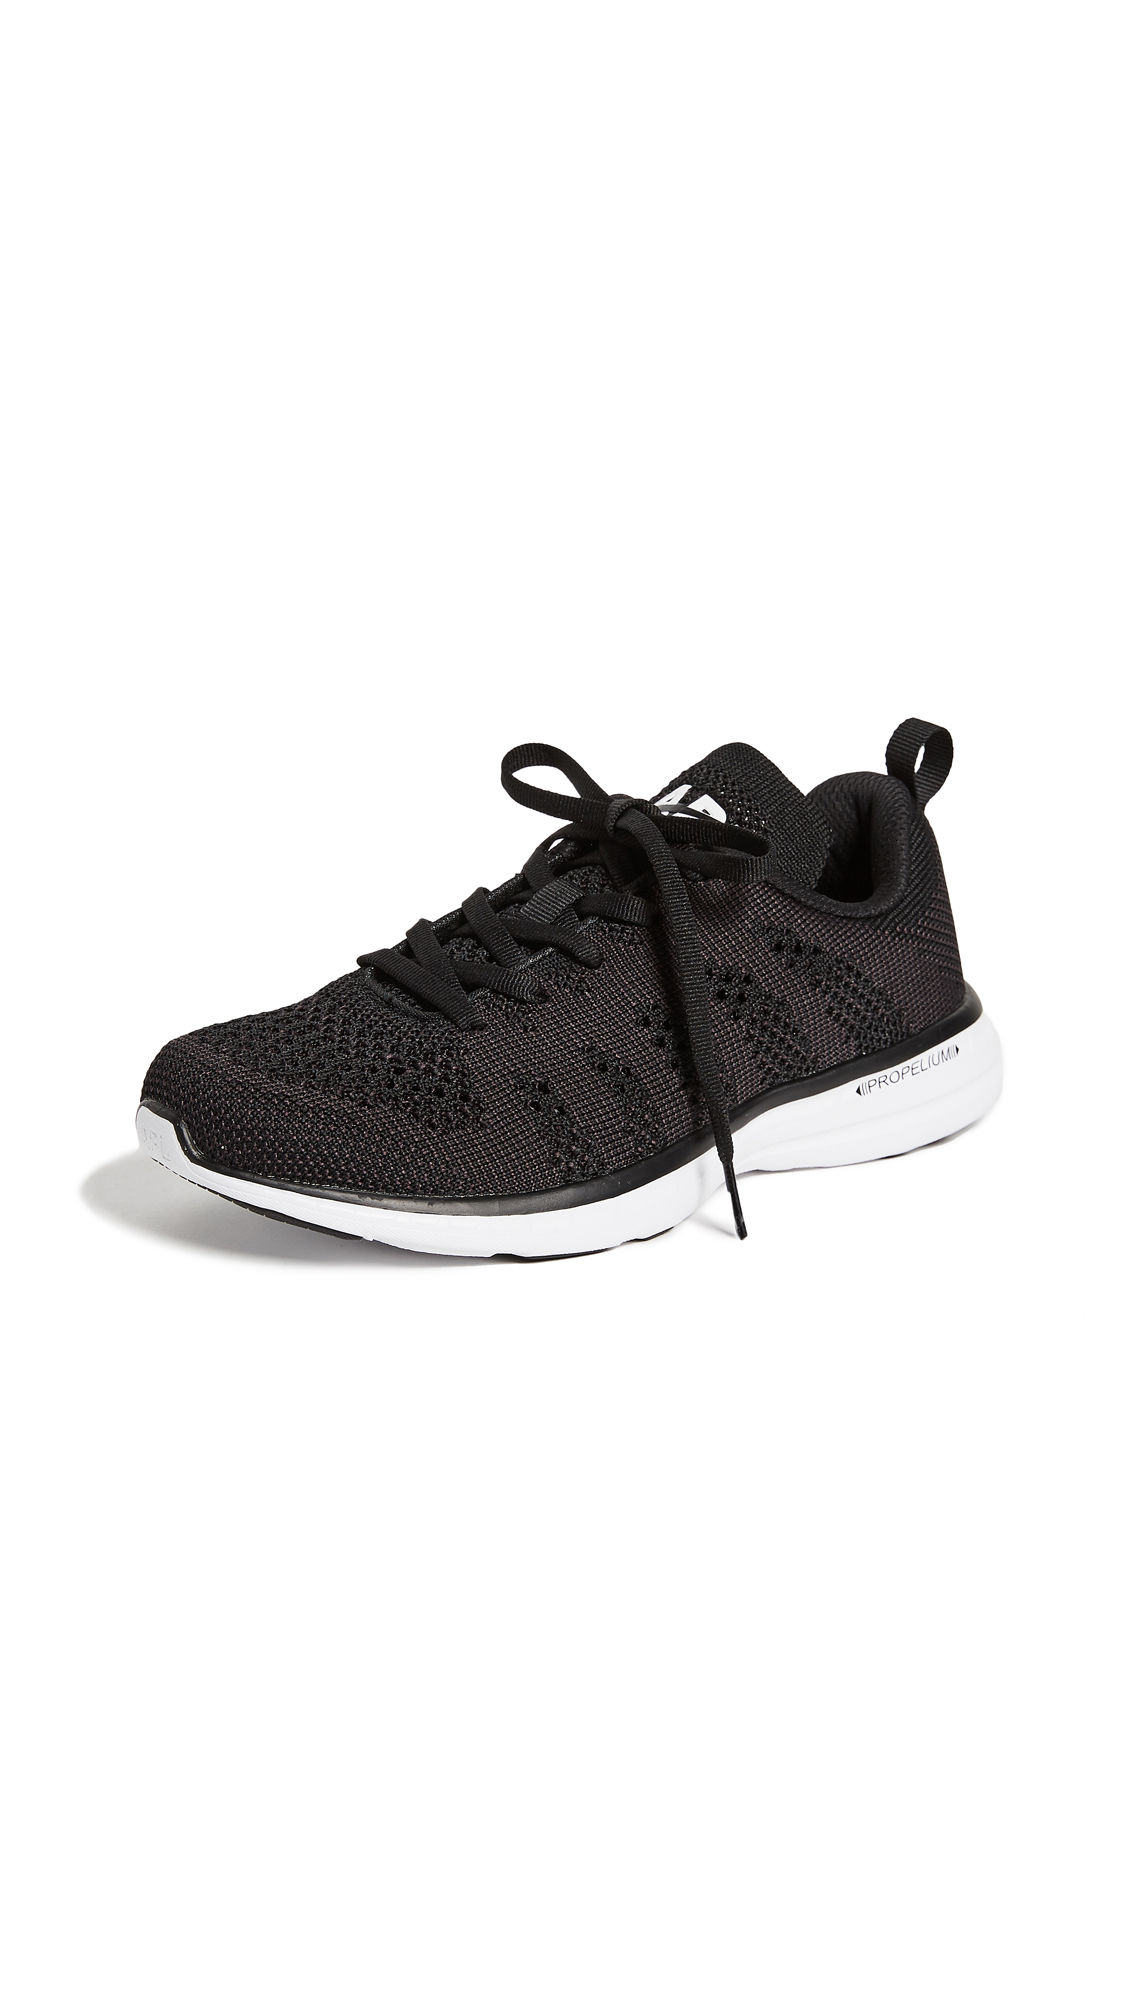 APL: Athletic Propulsion Labs TechLoom Pro Sneakers - Black/White/Black